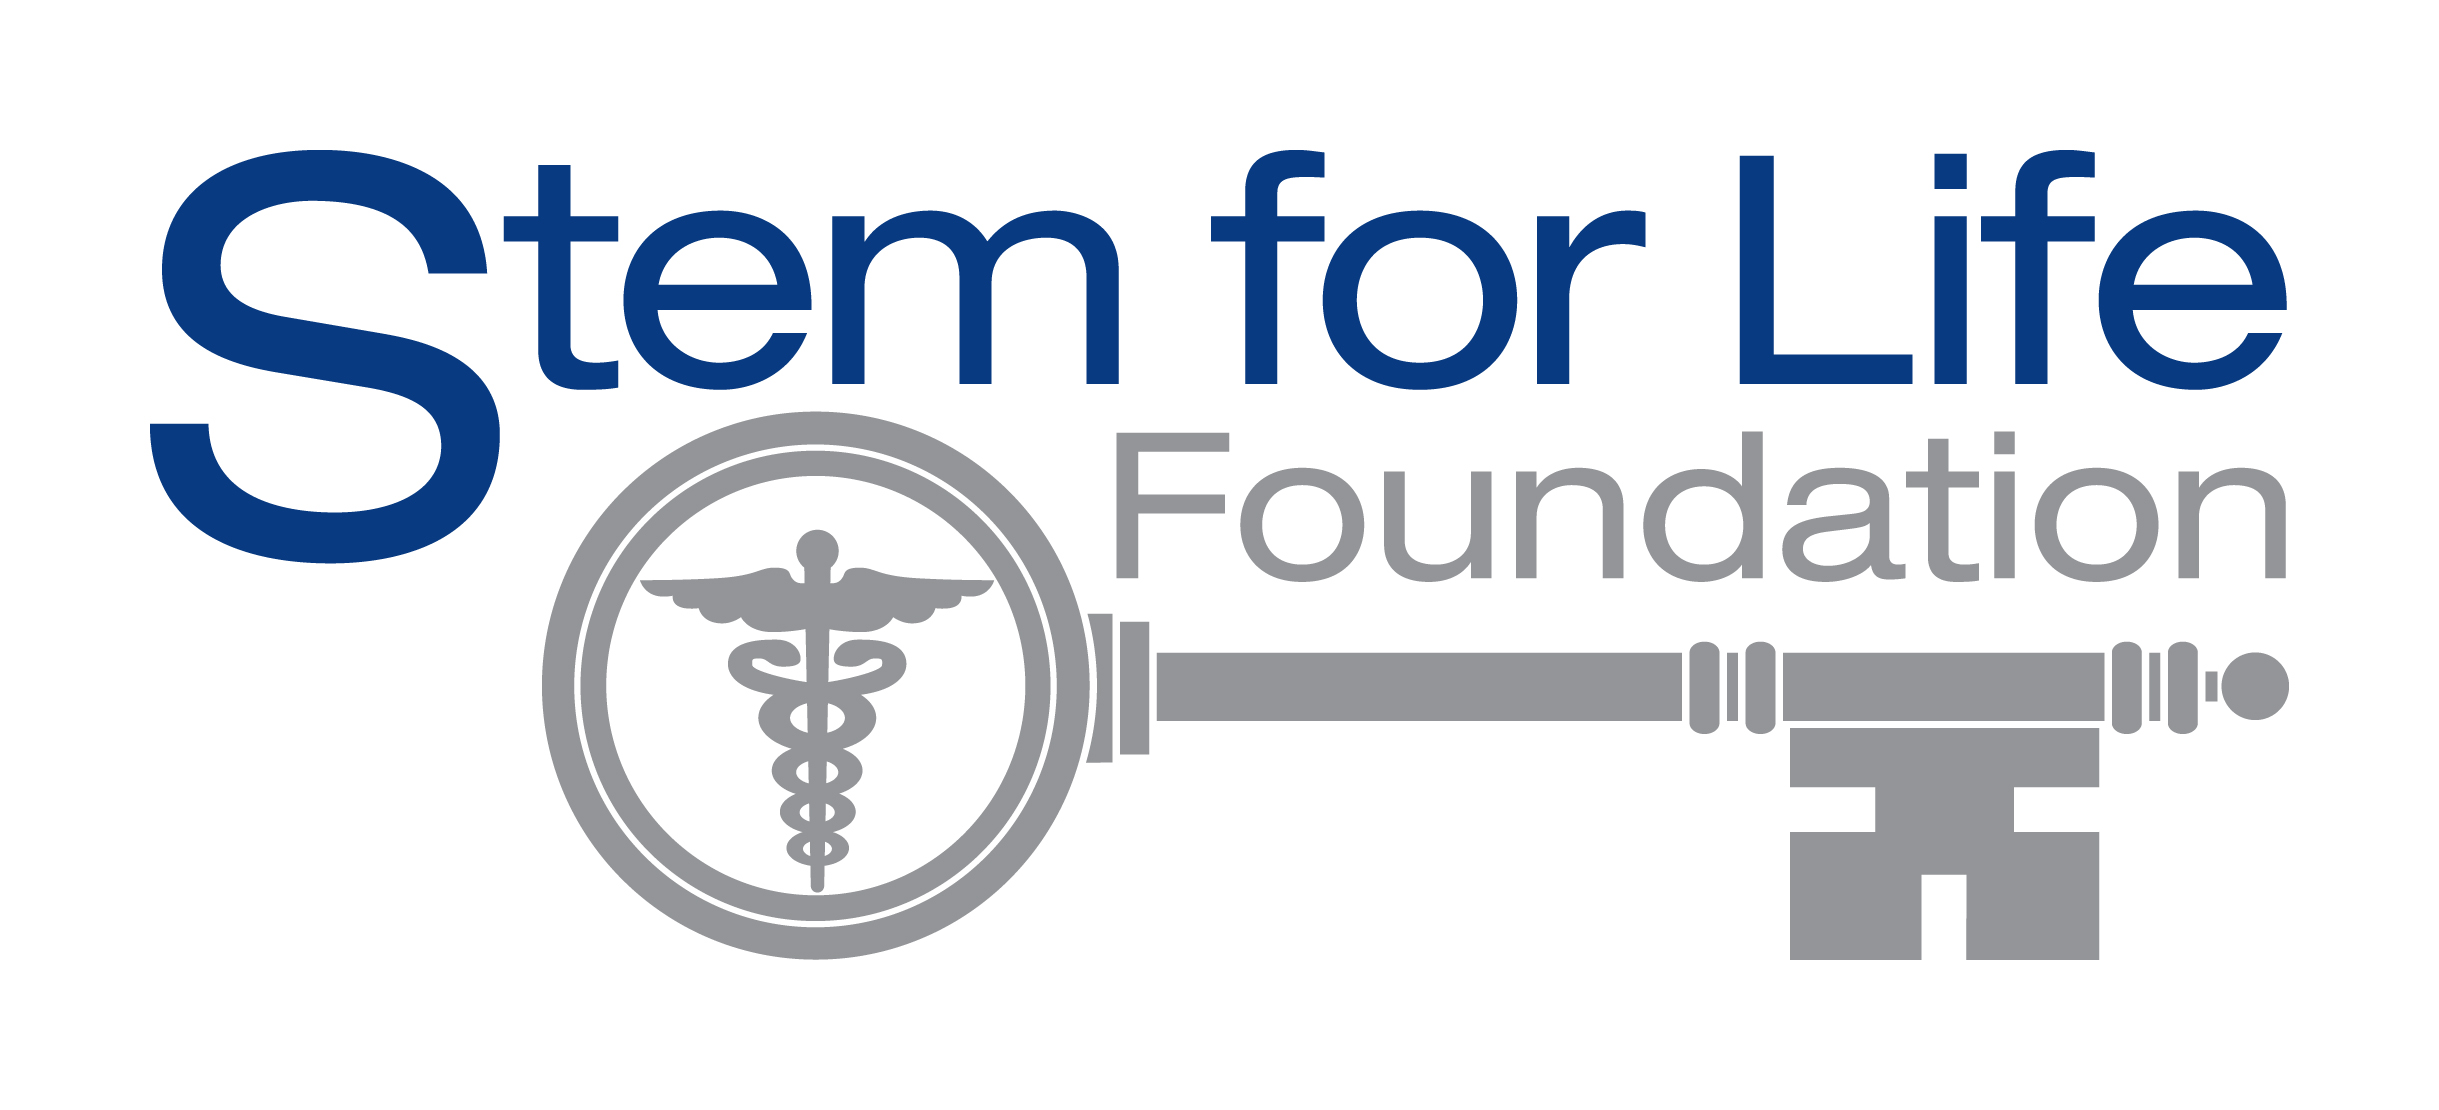 The Stem for Life Foundation logo